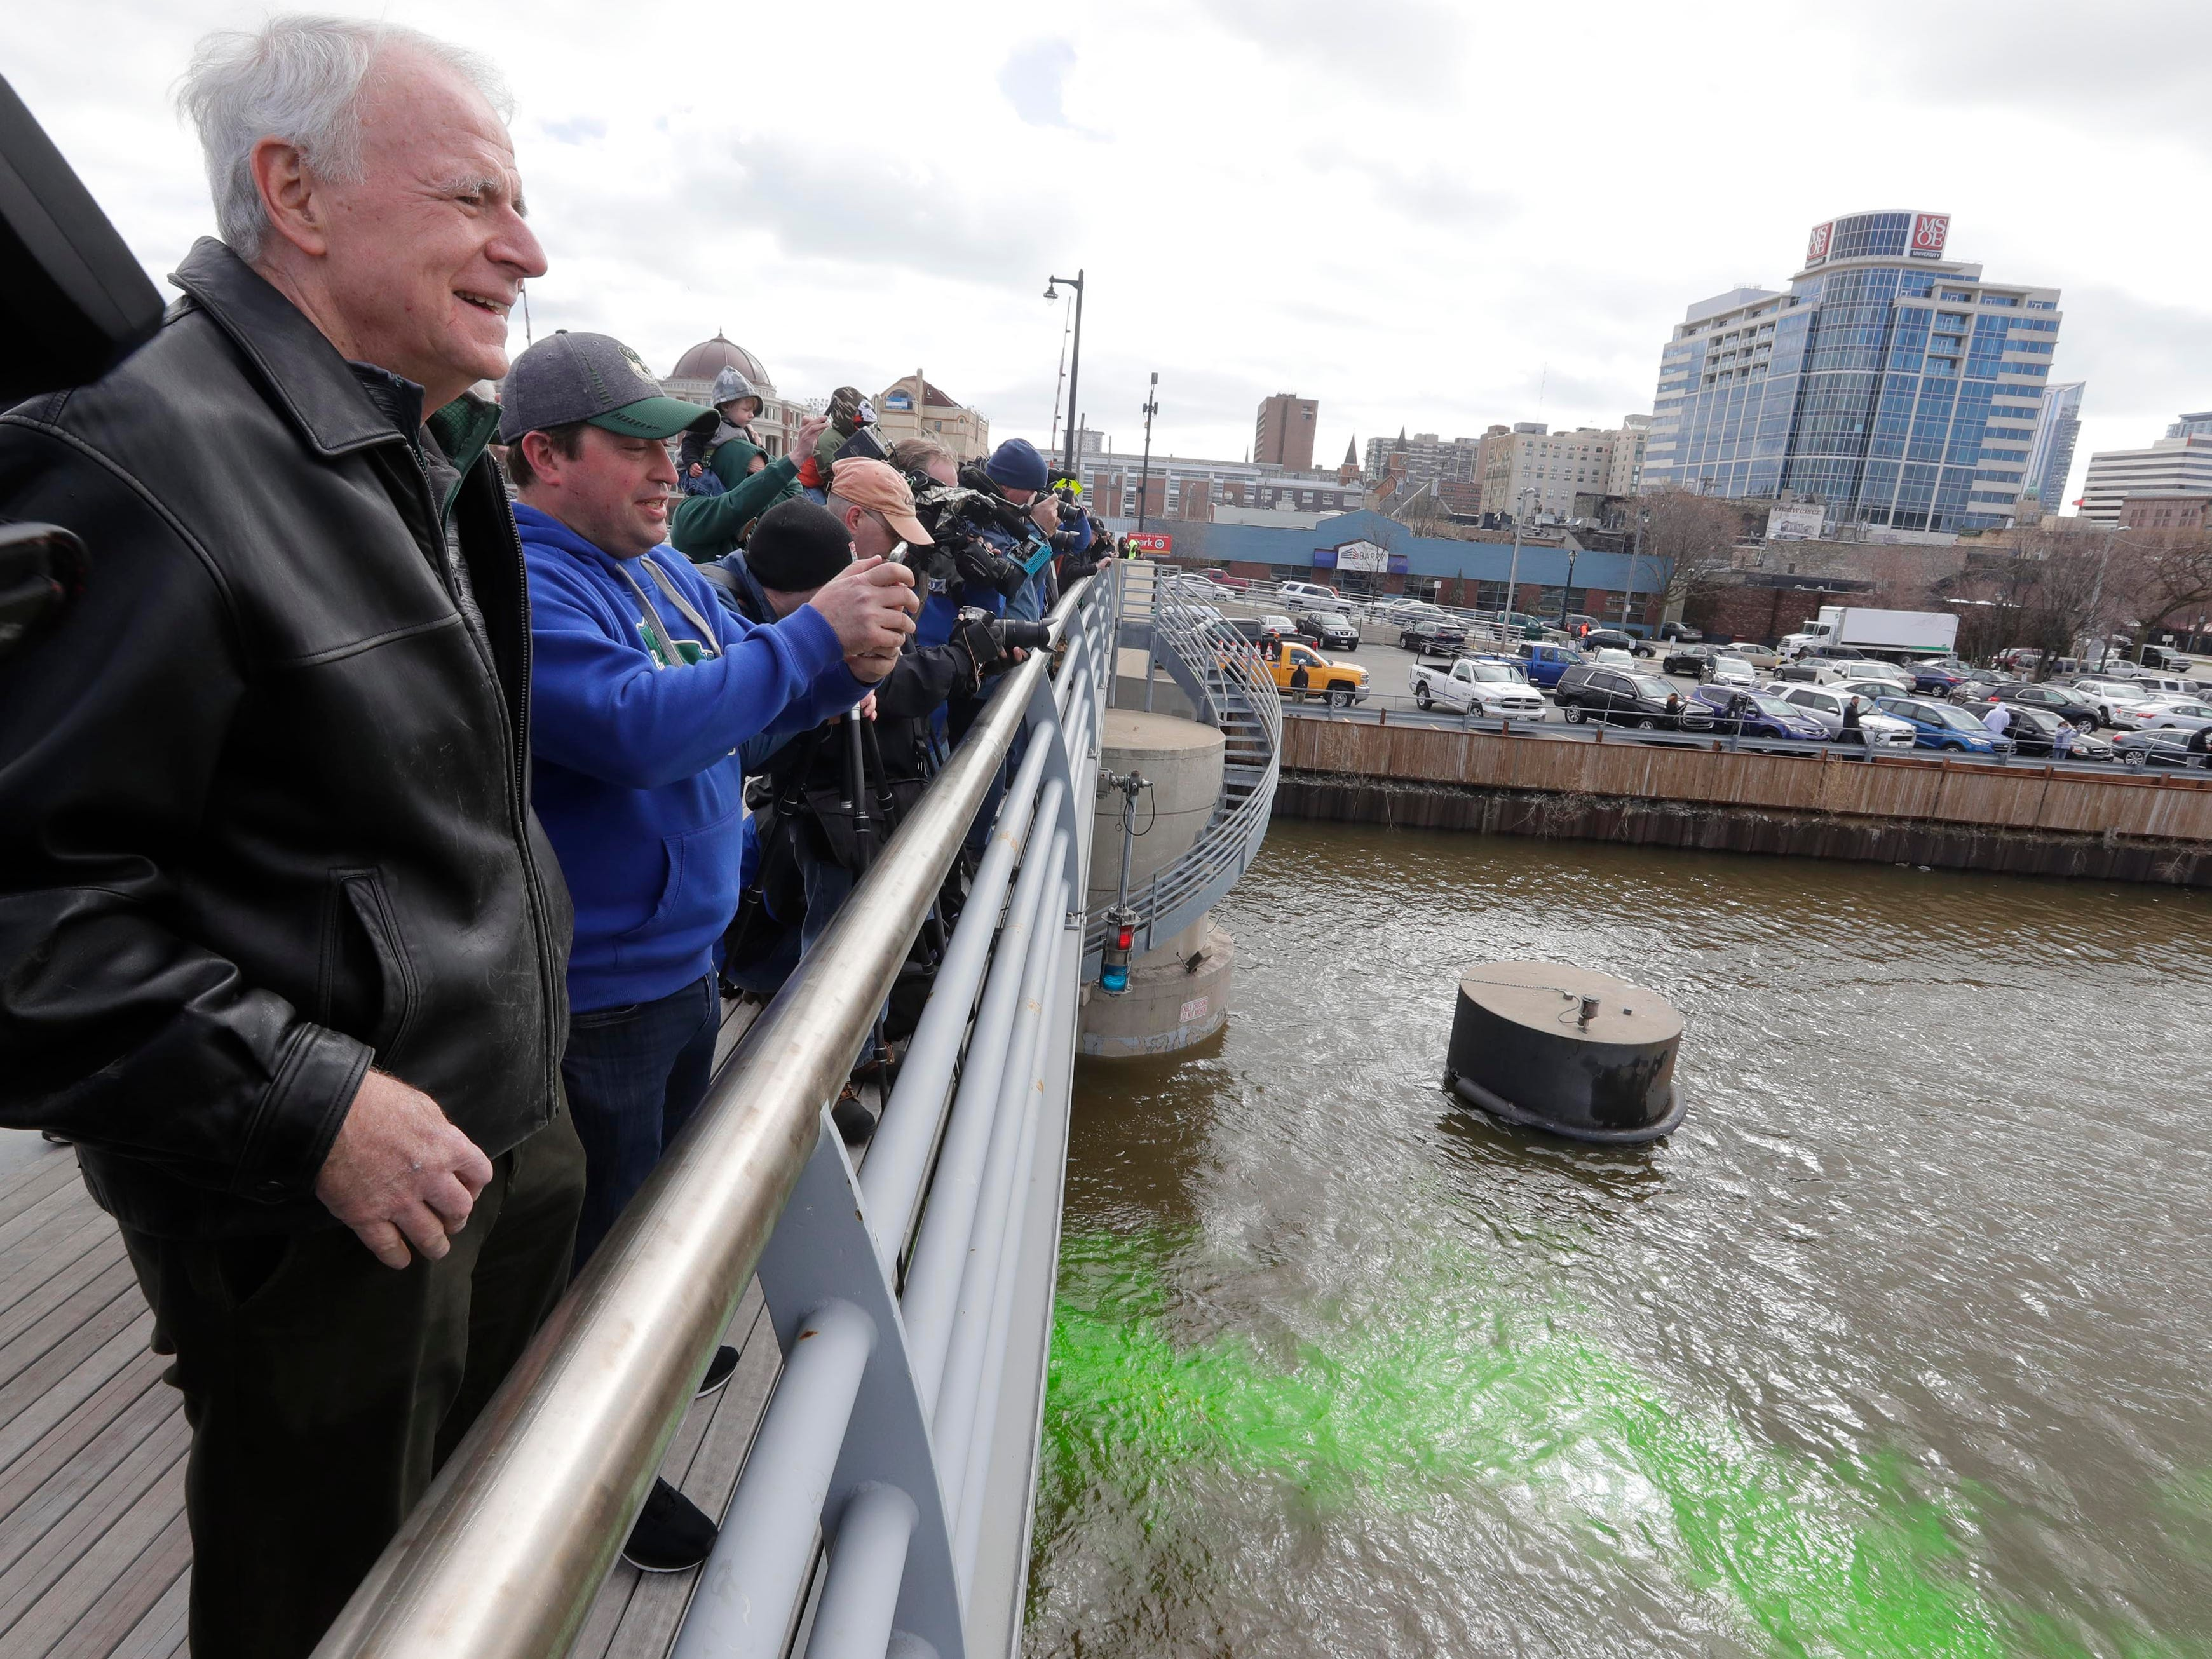 Mayor Barrett and Bucks President Peter Feigin take their own pics of the river turning green. Excitement over the Milwaukee Bucks heading into the NBA playoffs this weekend is enough to turn the Milwaukee River a bright shade of green. Milwaukee Bucks president Peter Feigin and Milwaukee Mayor Tom Barrett watch as boats drop harmless green powder into the Milwaukee River near McKinley to celebrate the Milwaukee Bucks playoffs which begin Sunday.